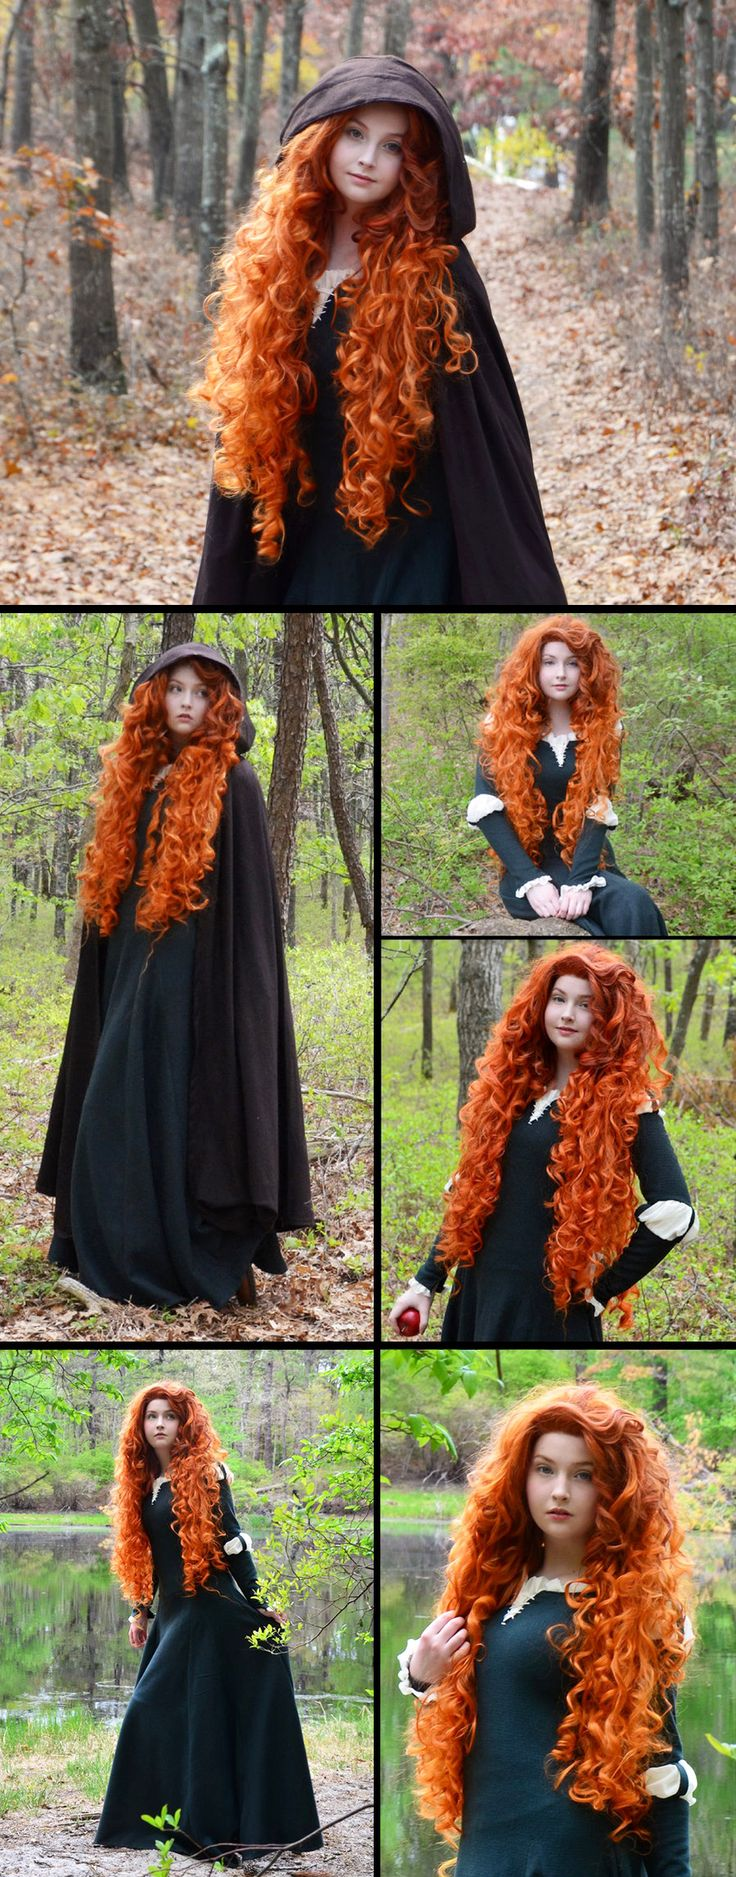 Ive just watched brave for the first time and omg given i dint really buy into the Disney princess thing i love this